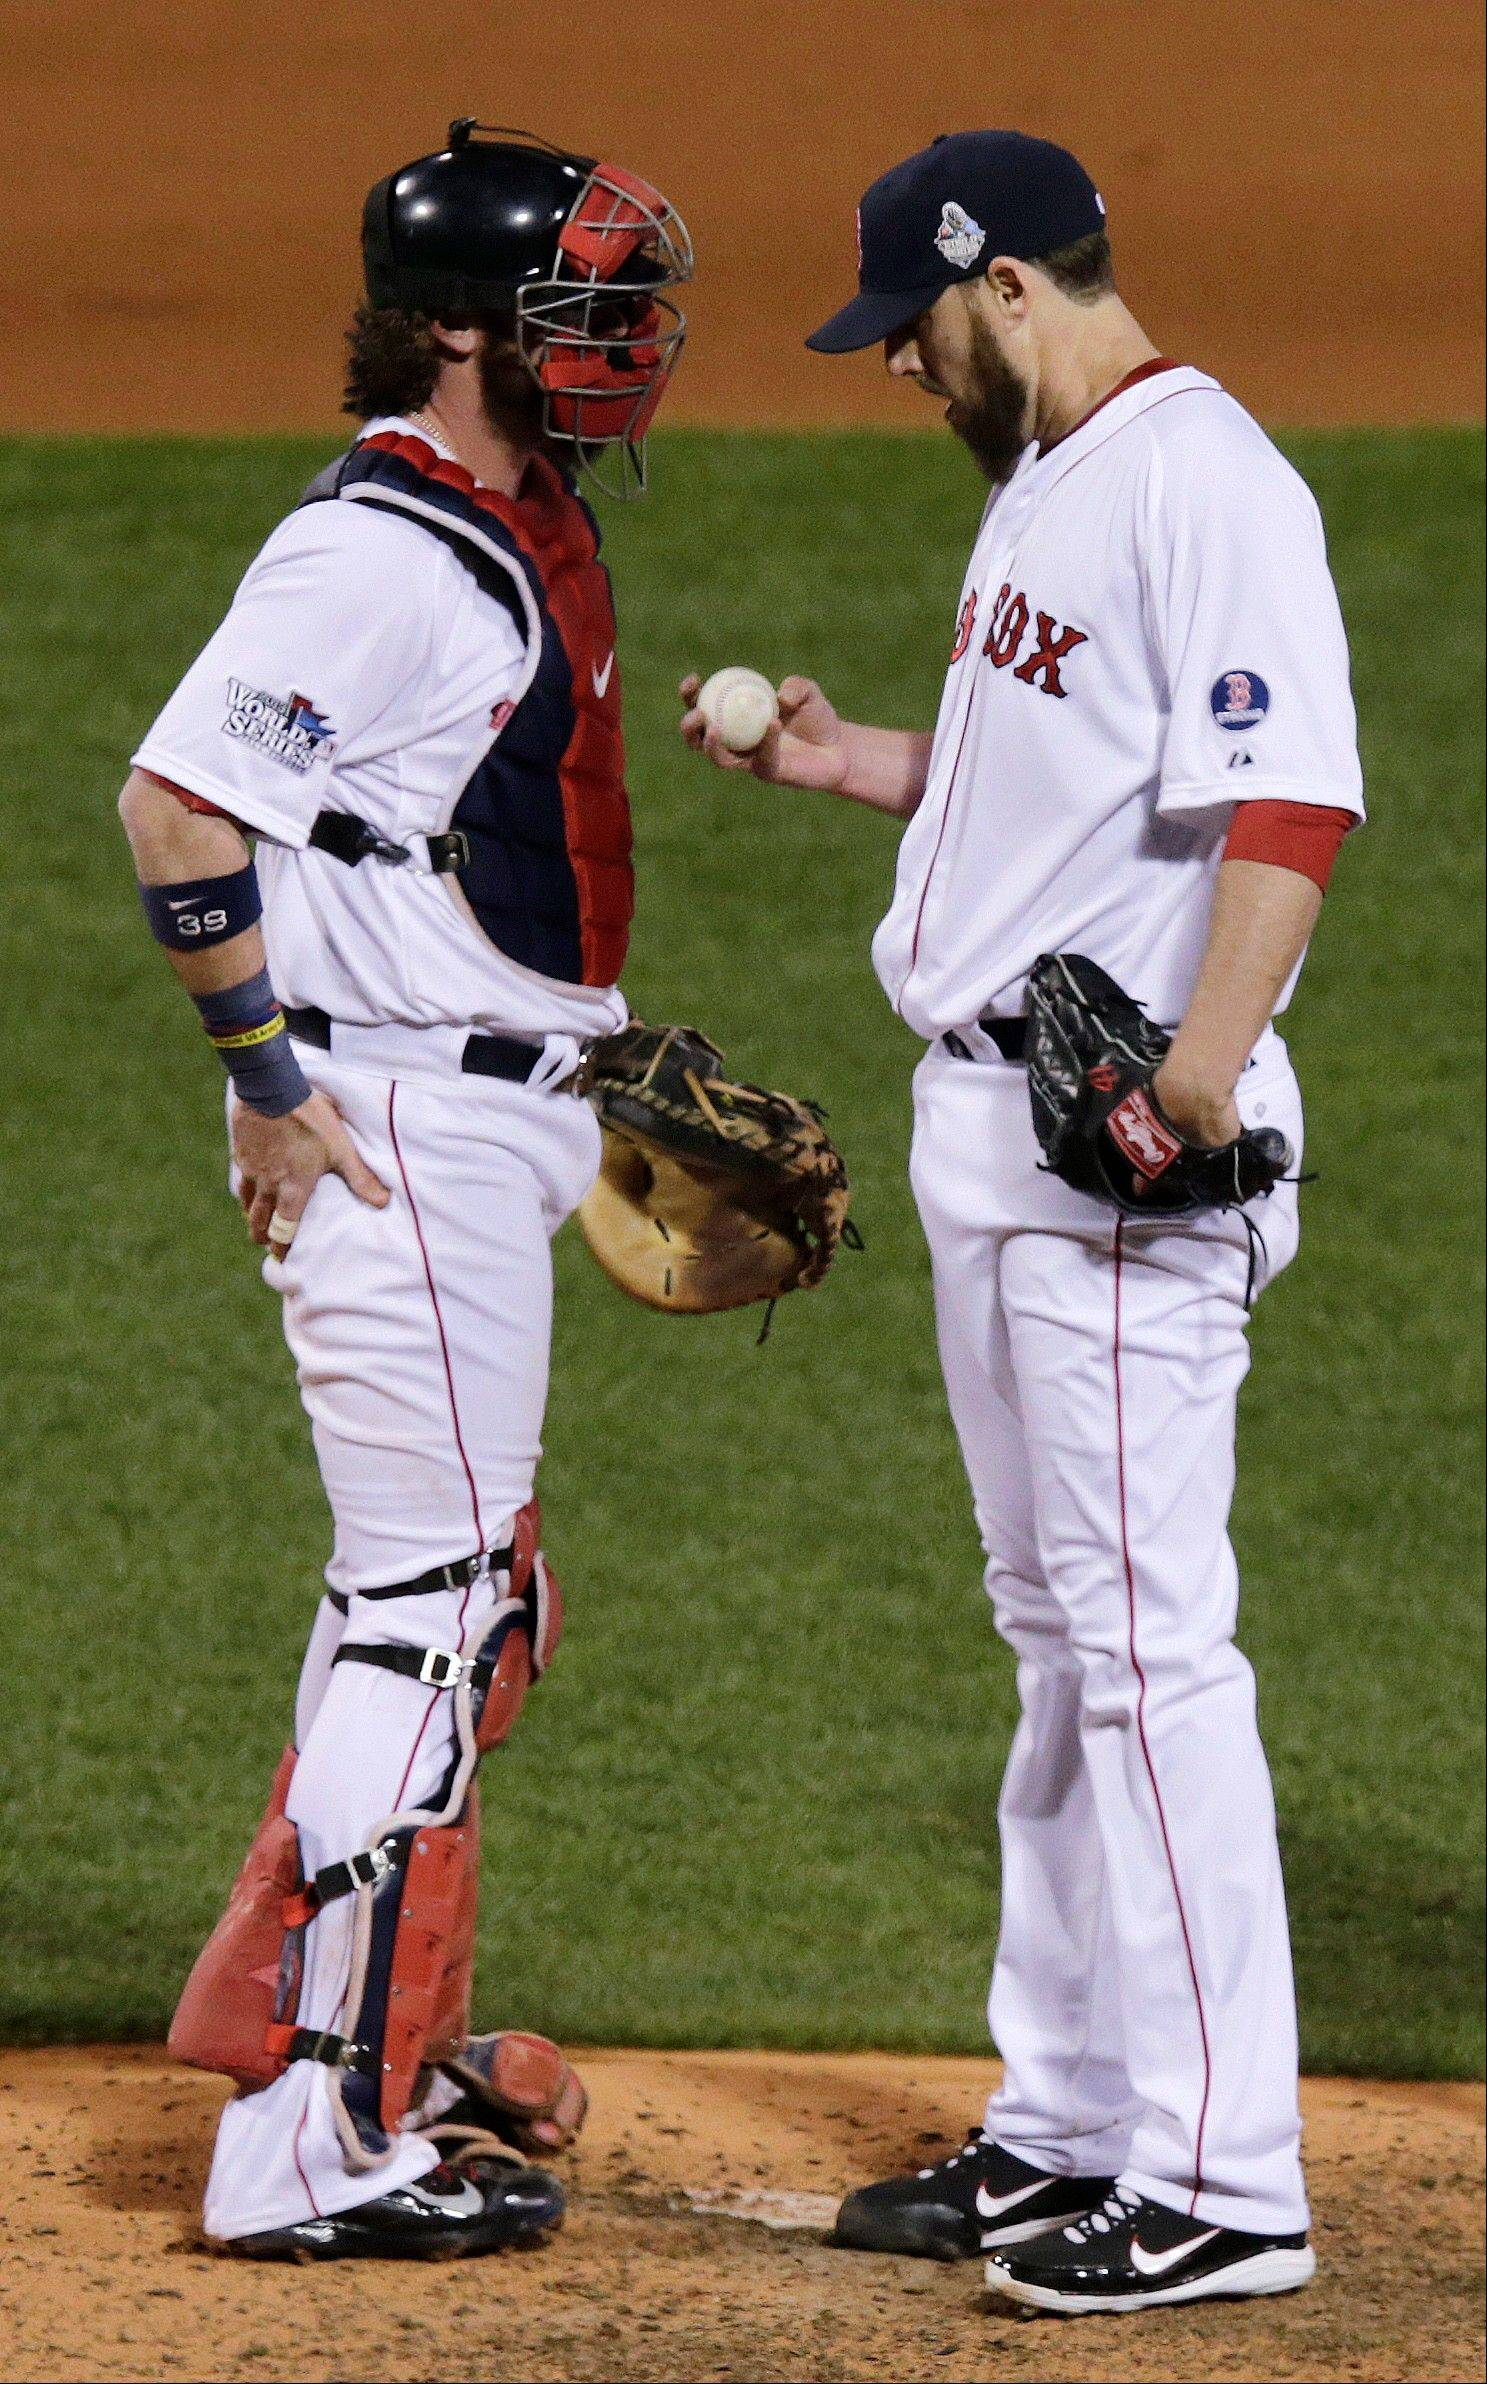 Boston Red Sox starting pitcher John Lackey, right, confers with catcher Jarrod Saltalamacchia before being taken out of the game during the seventh inning.